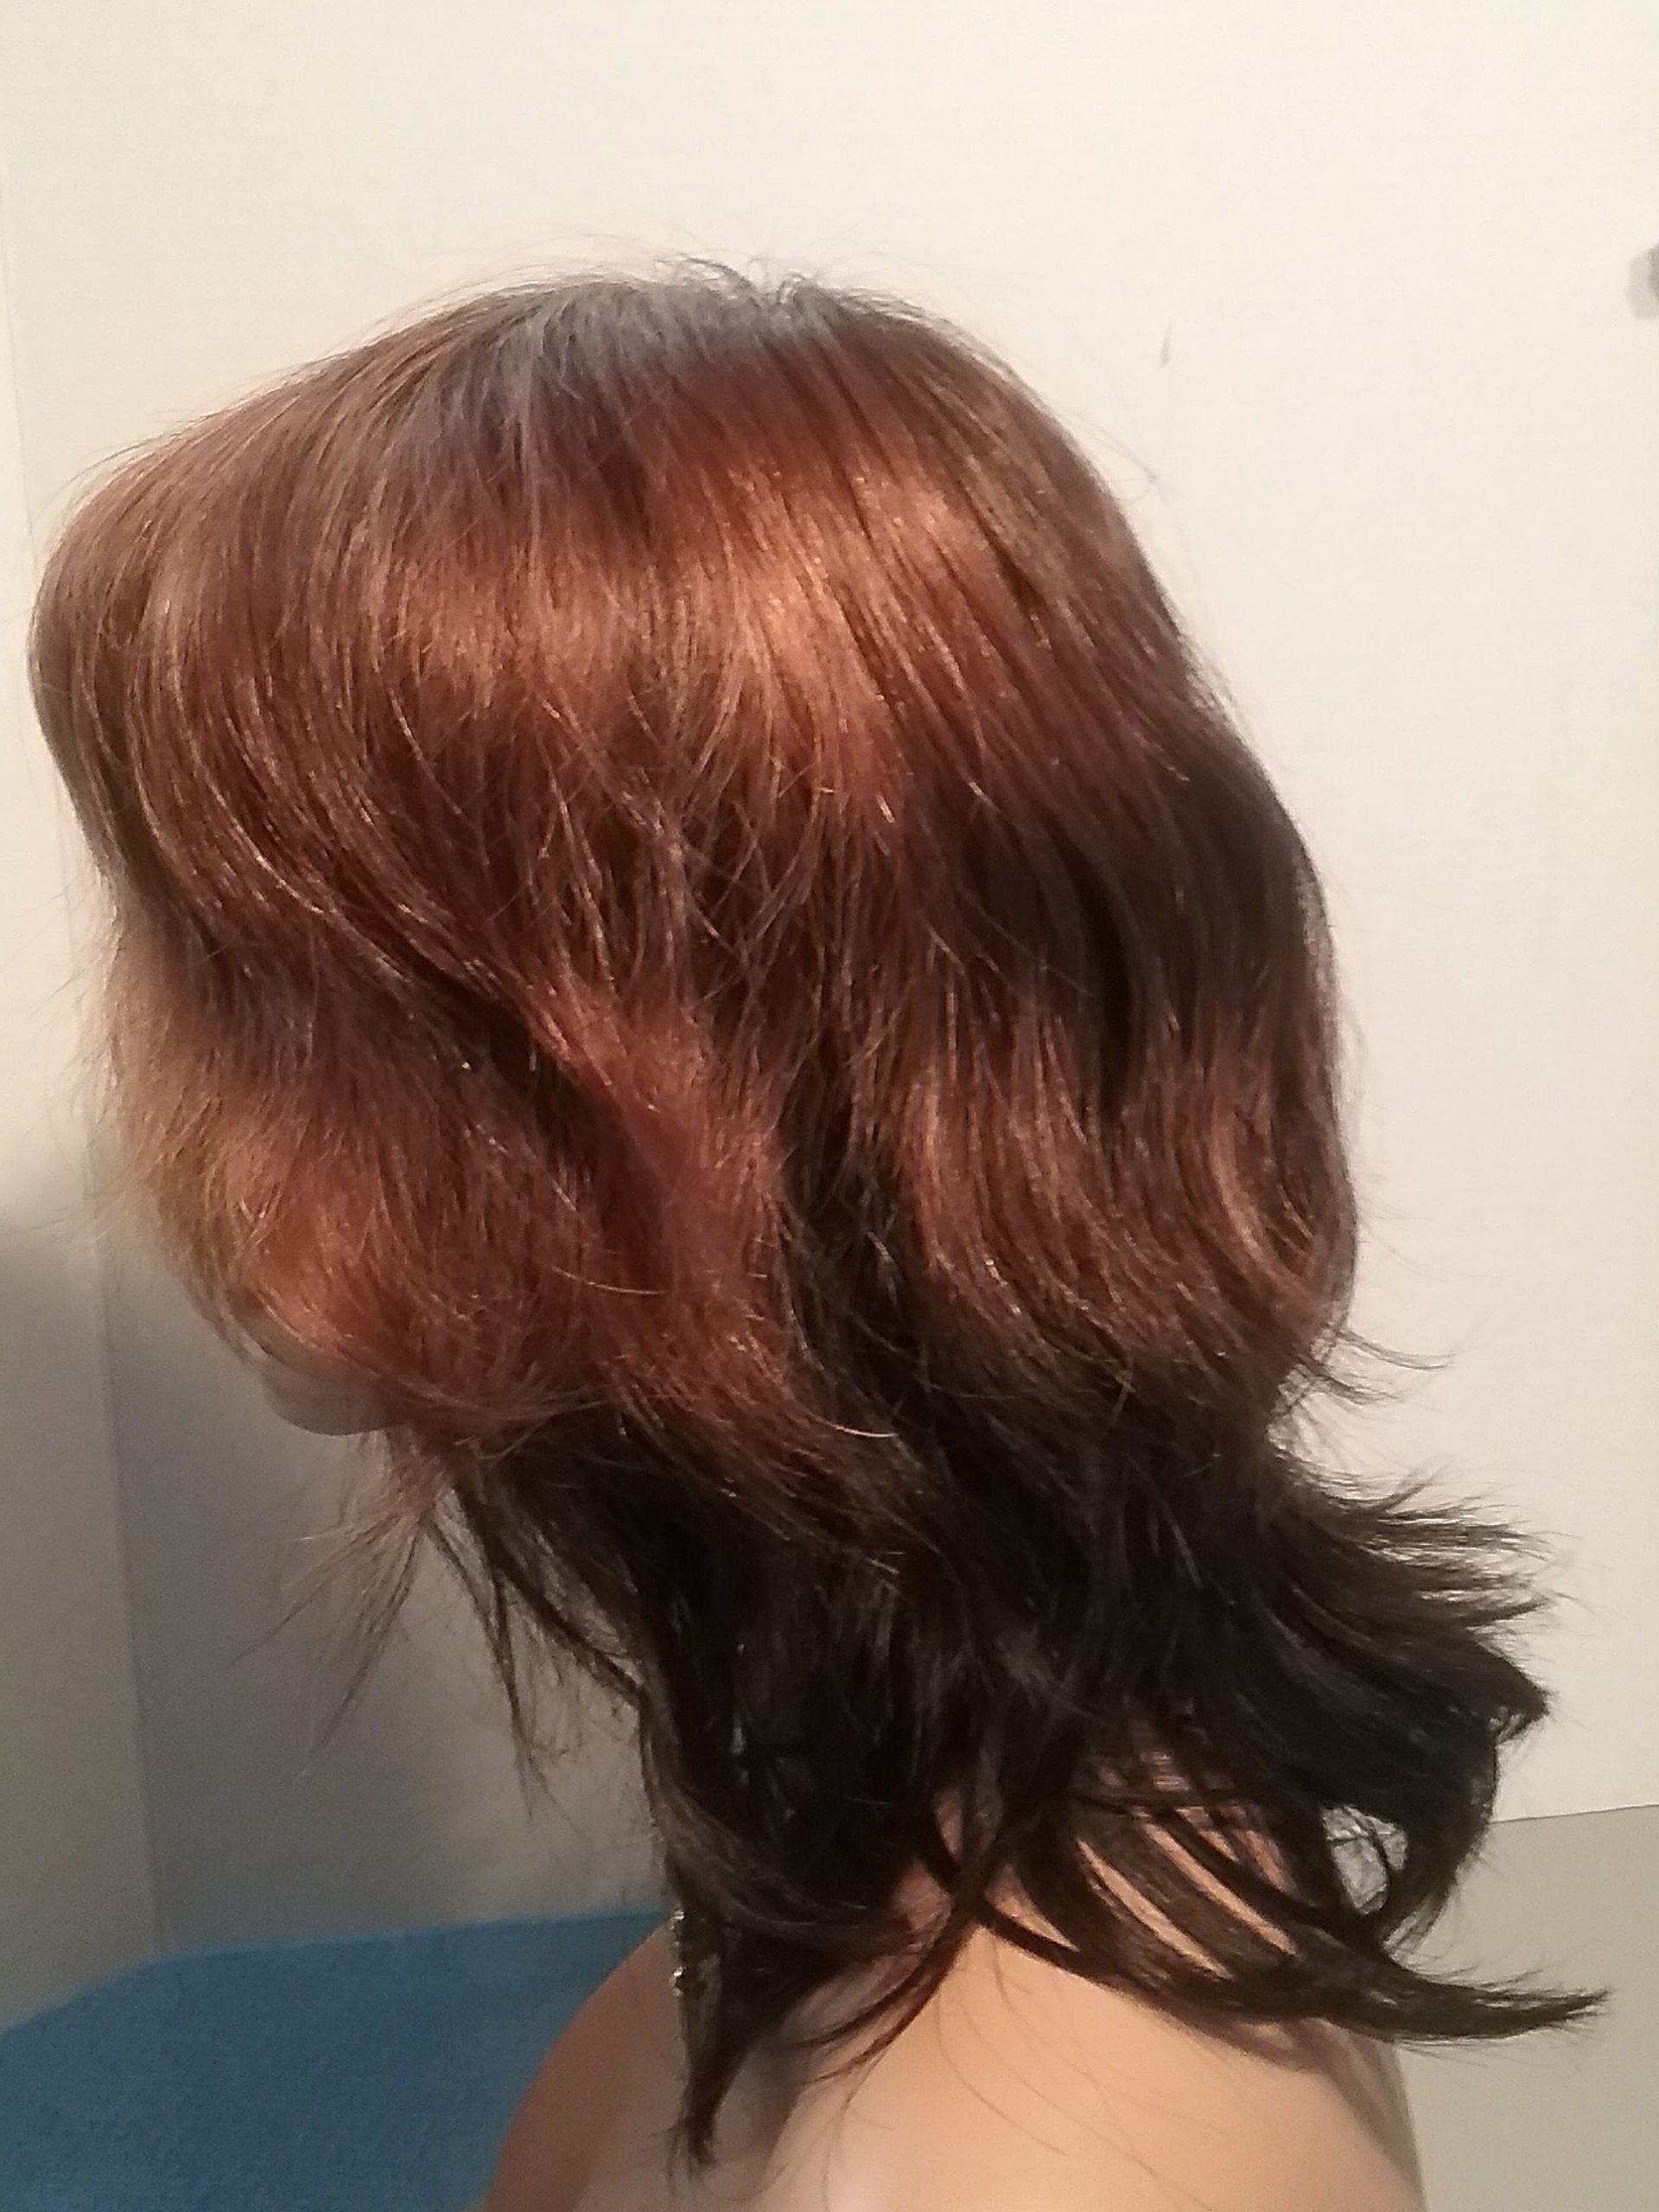 Wig-Coloring2-scaled